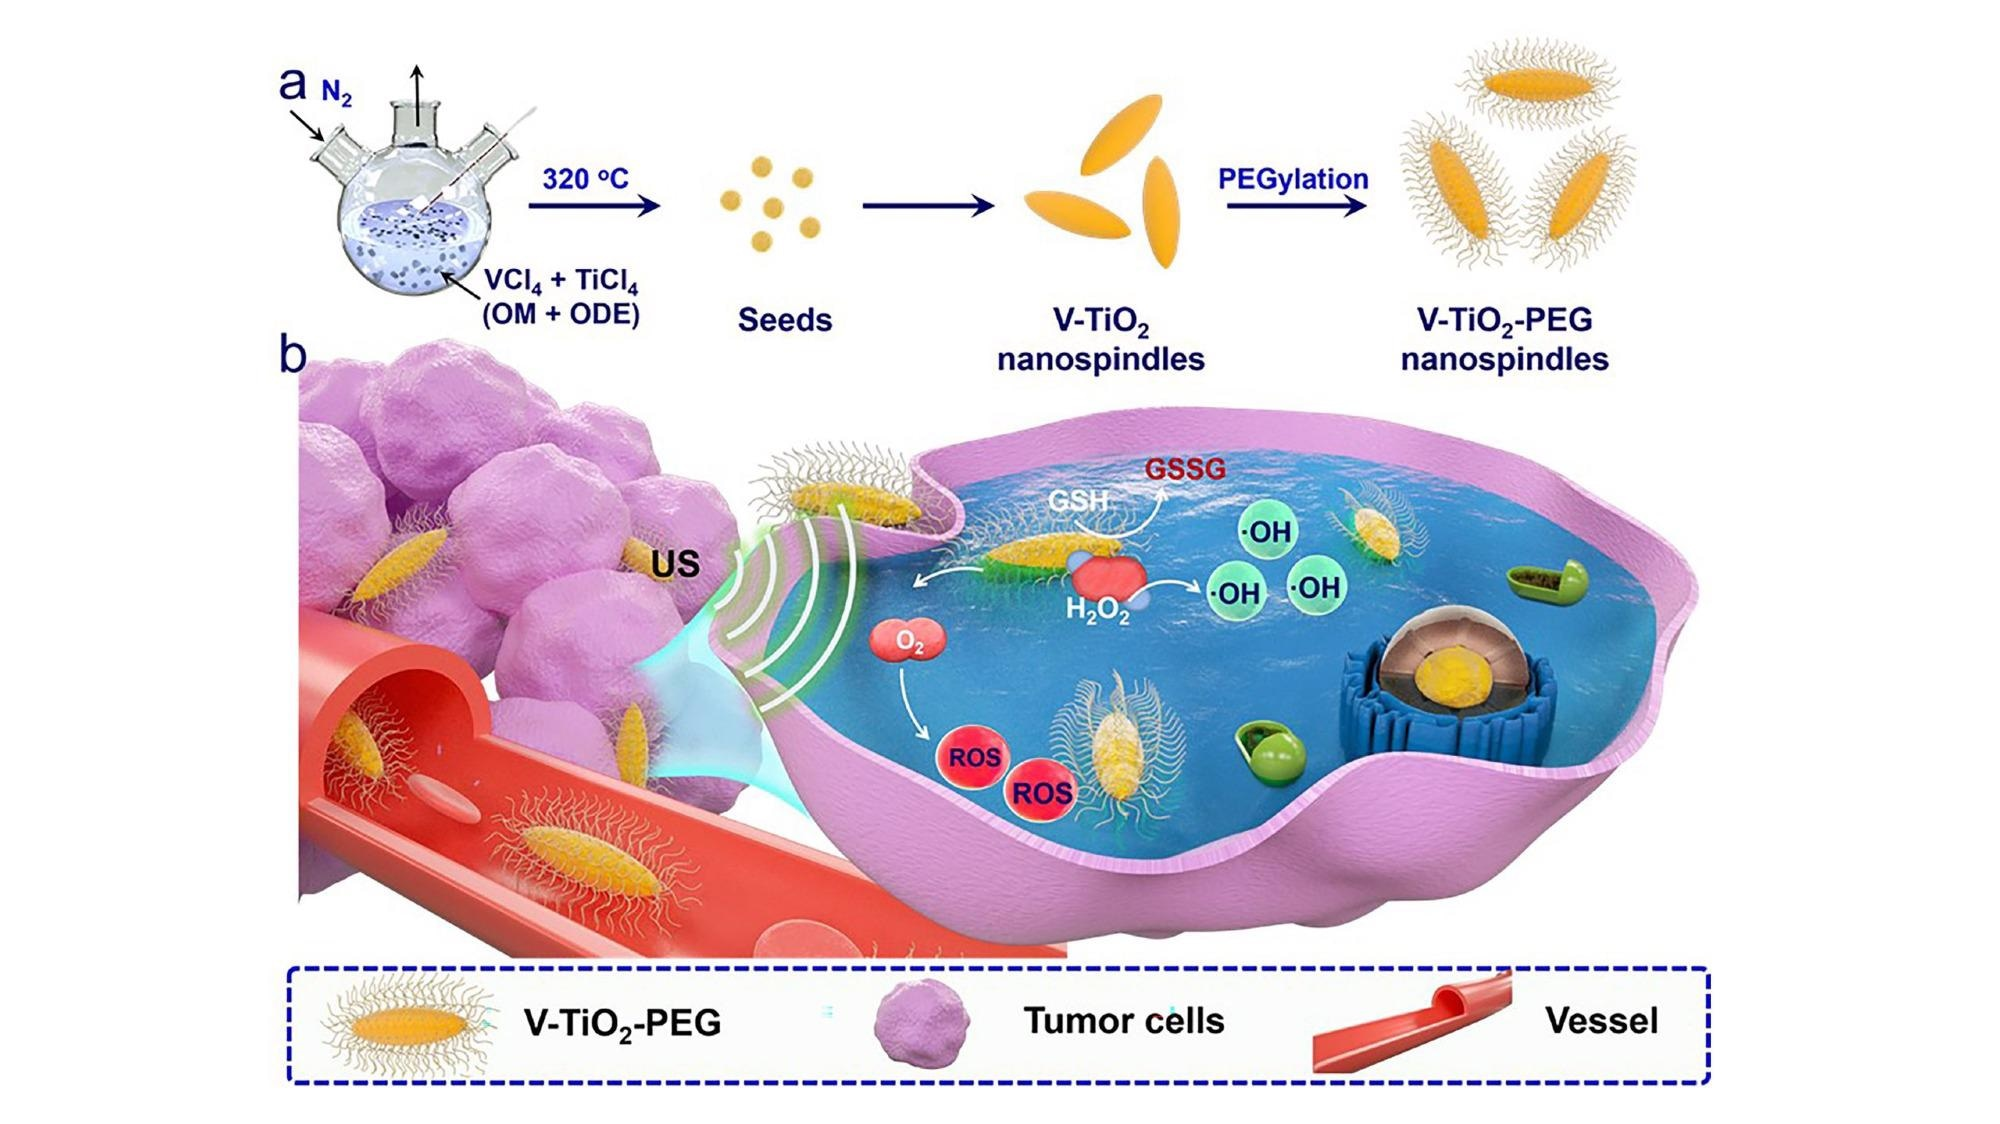 V-TiO2 nanospindles encased in polyethylene glycol (PEG) and used in combination with ultrasound waves can kill cancer cells.